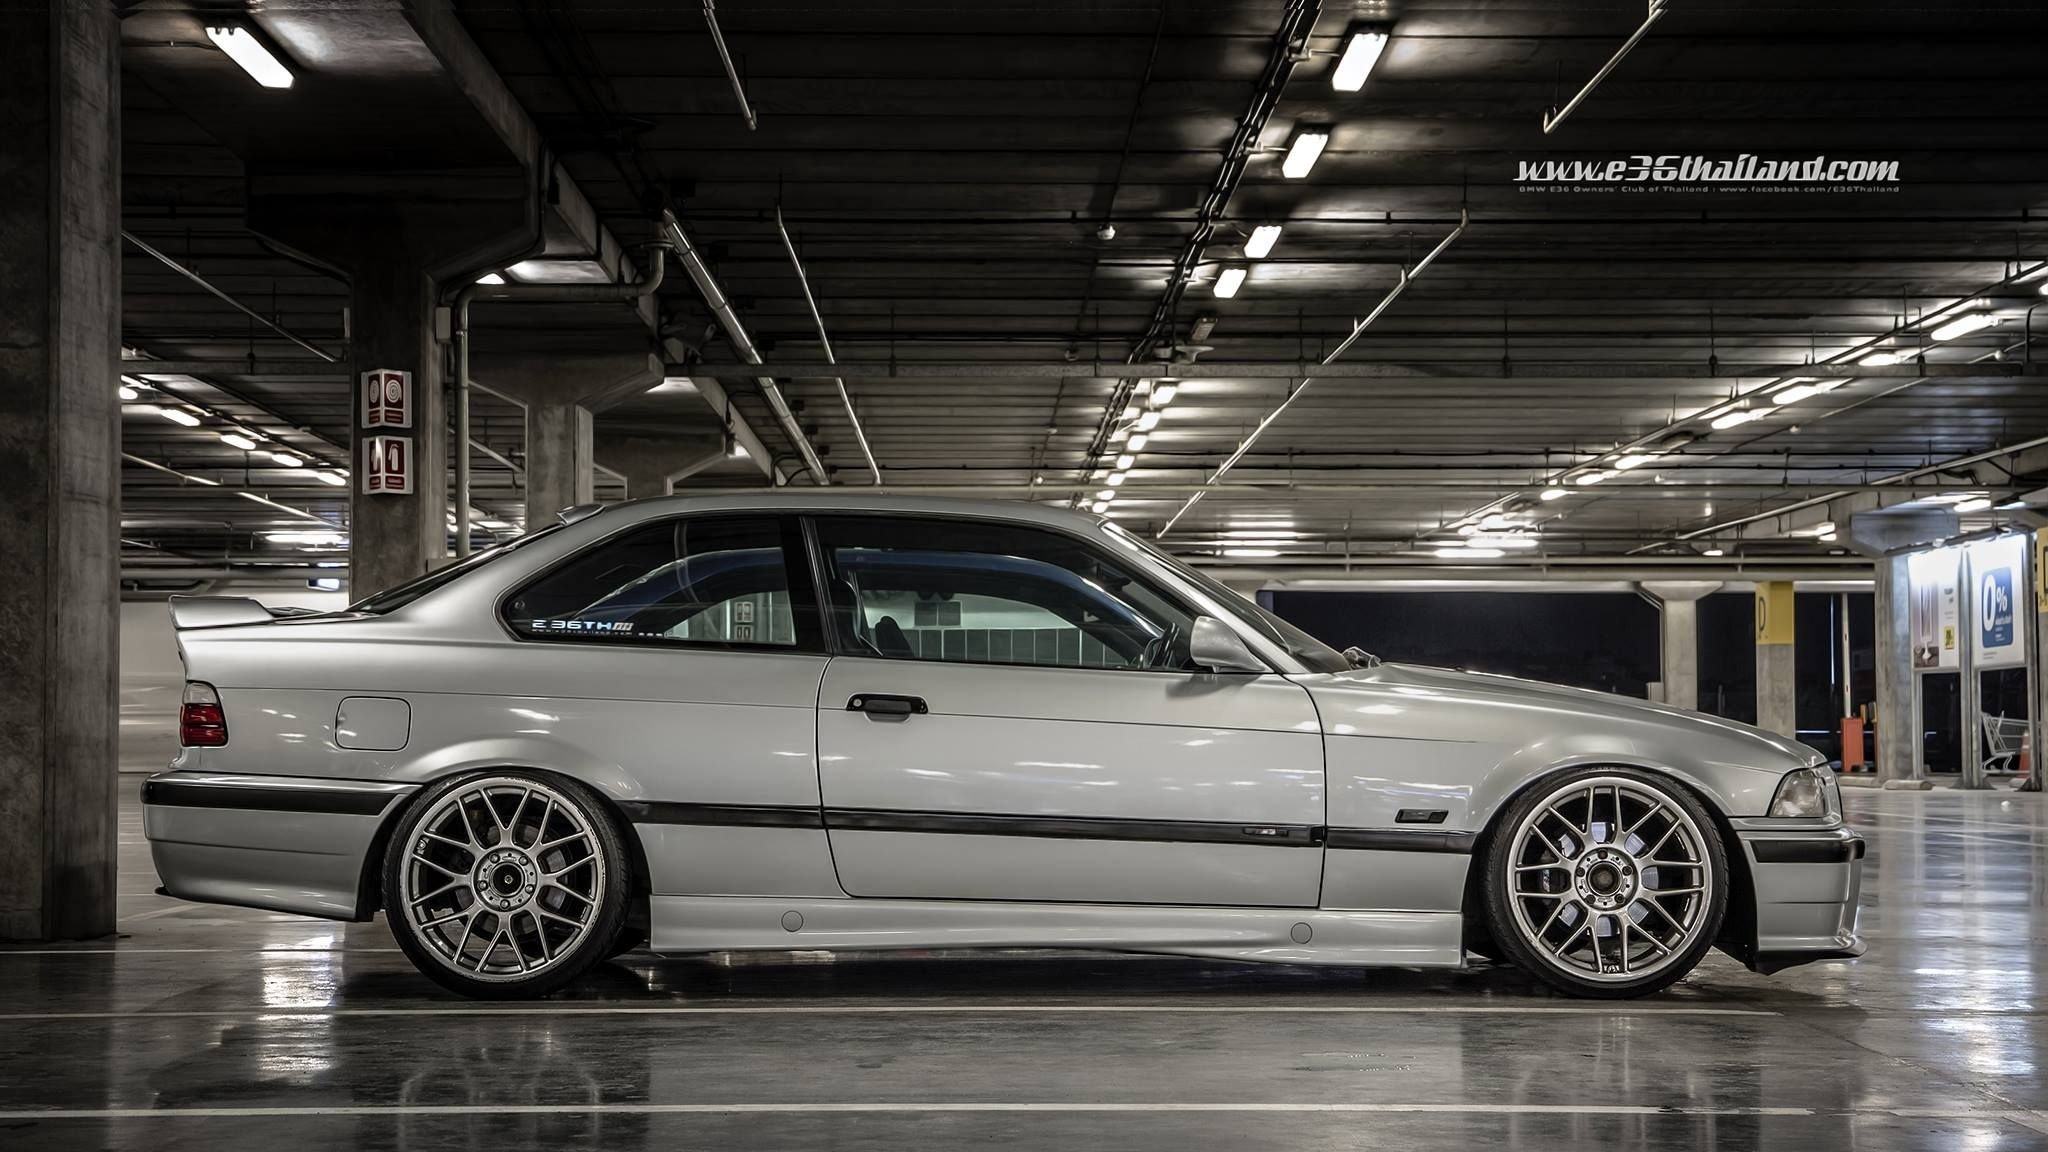 Latest Silver Bmw E36 Coupe On 18 Monoblock Bbs Rc Wheels Bmw Free Download